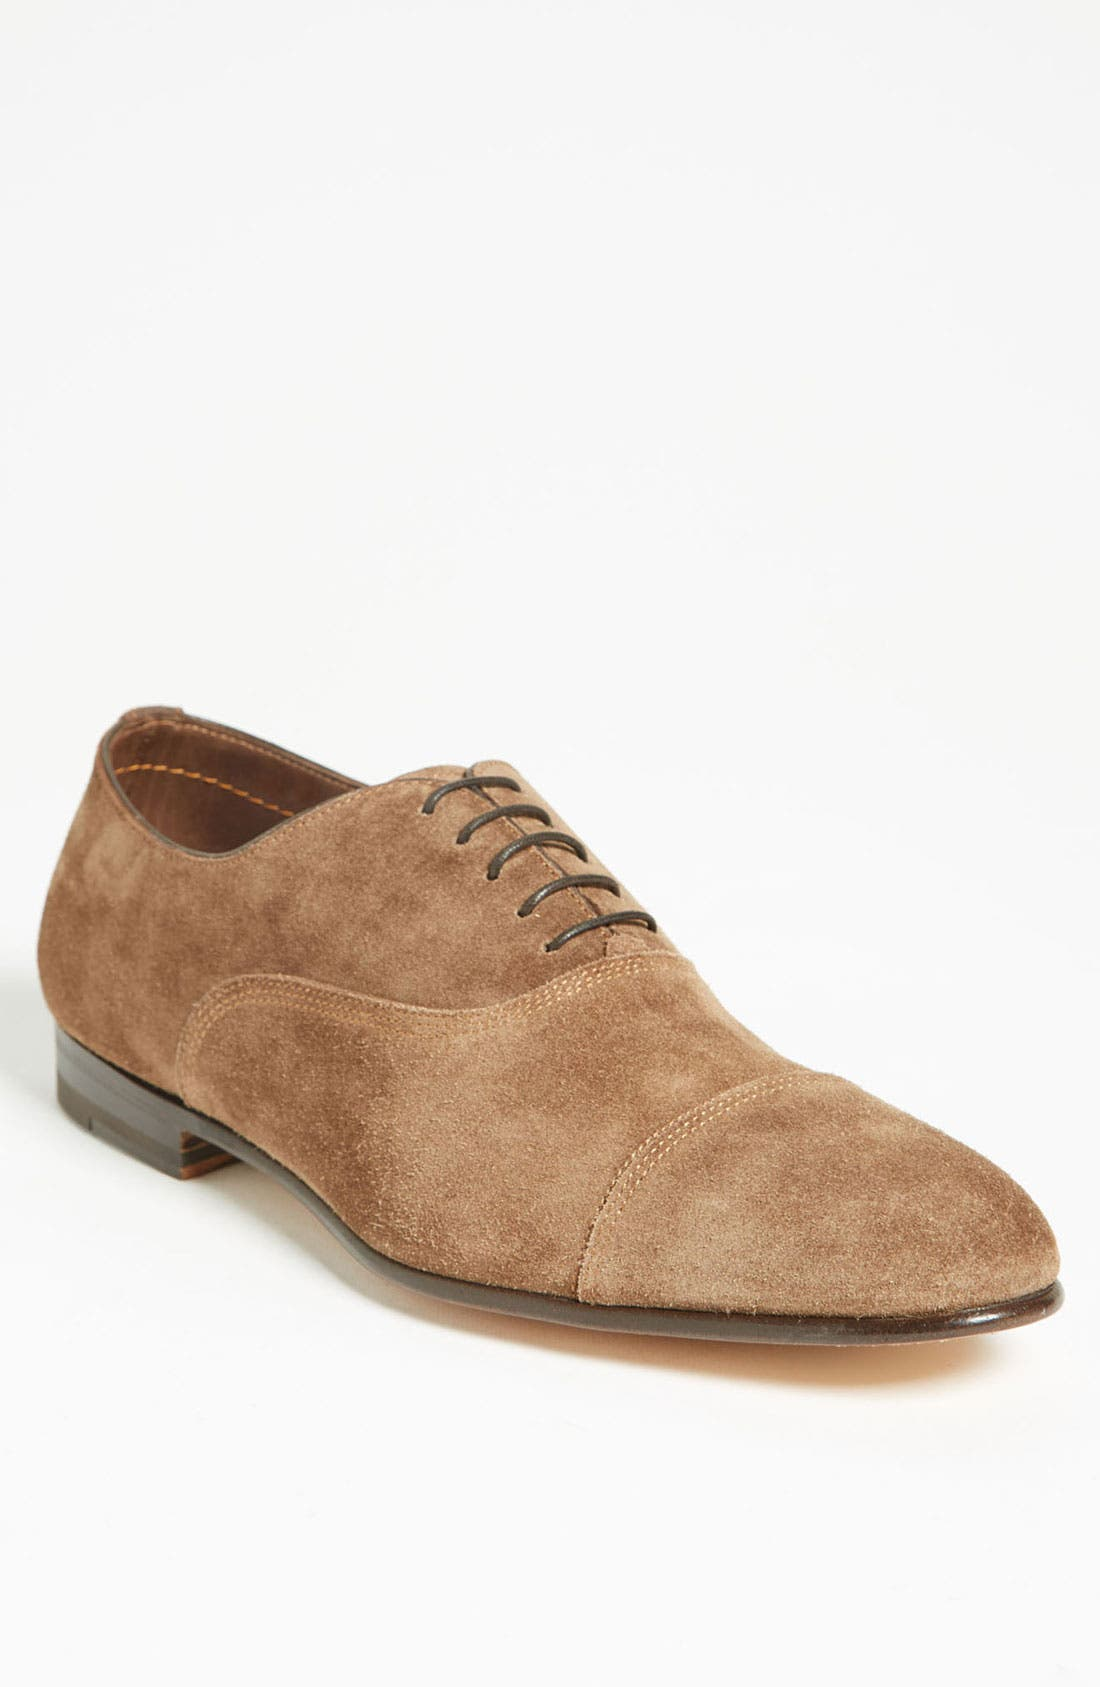 Alternate Image 1 Selected - Santoni 'Turk' Cap Toe Oxford